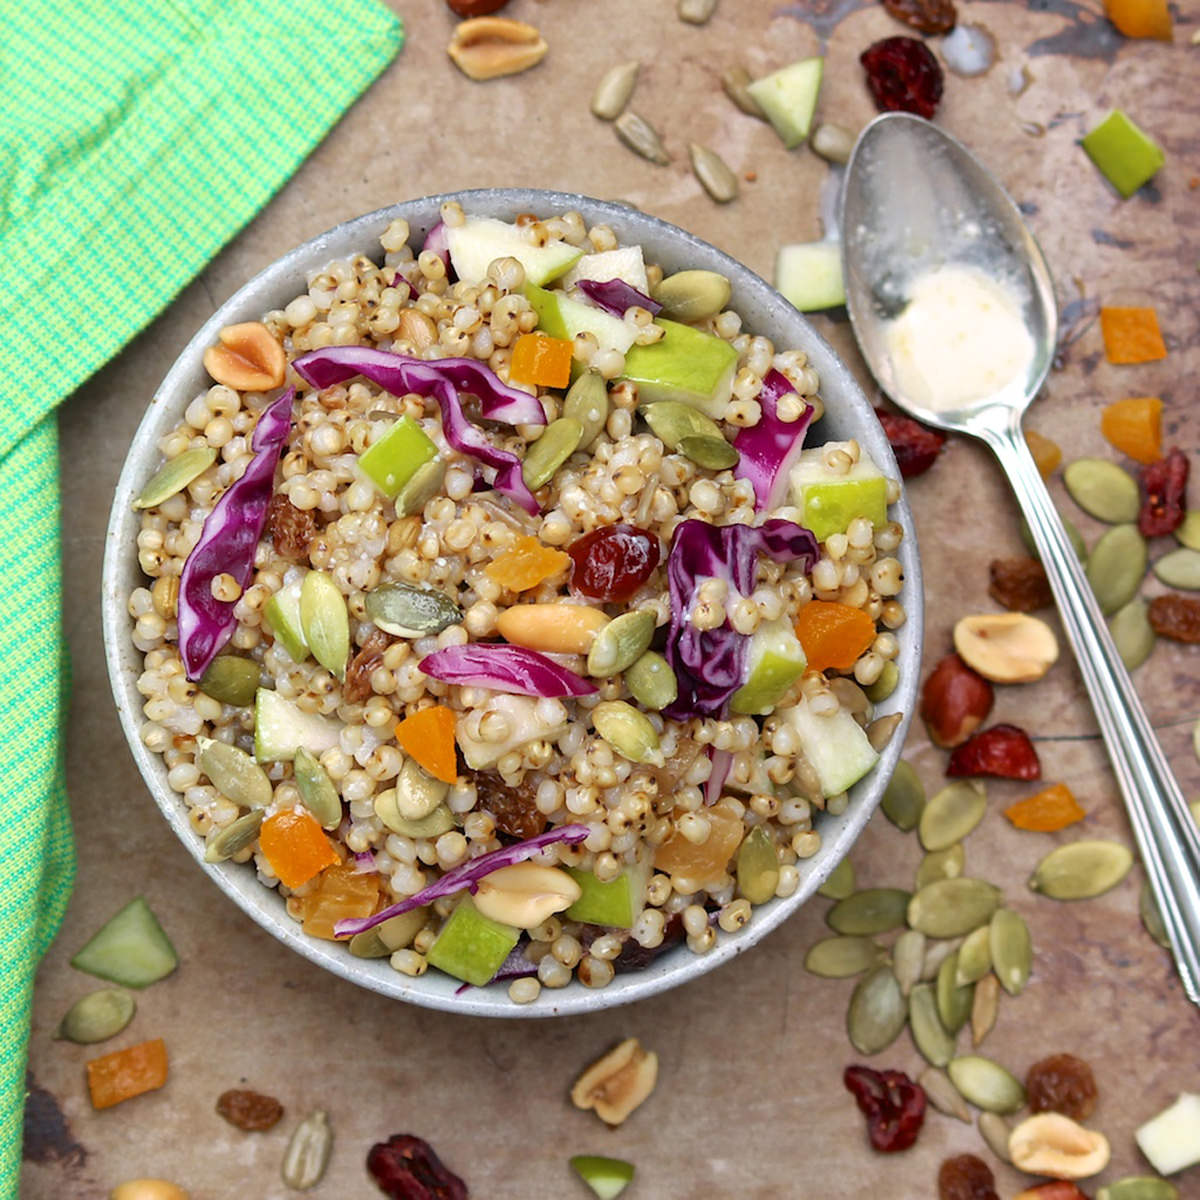 Pick-a-Grain-Trail-Mix-Salad-with-Honey-Yogurt-Dressing